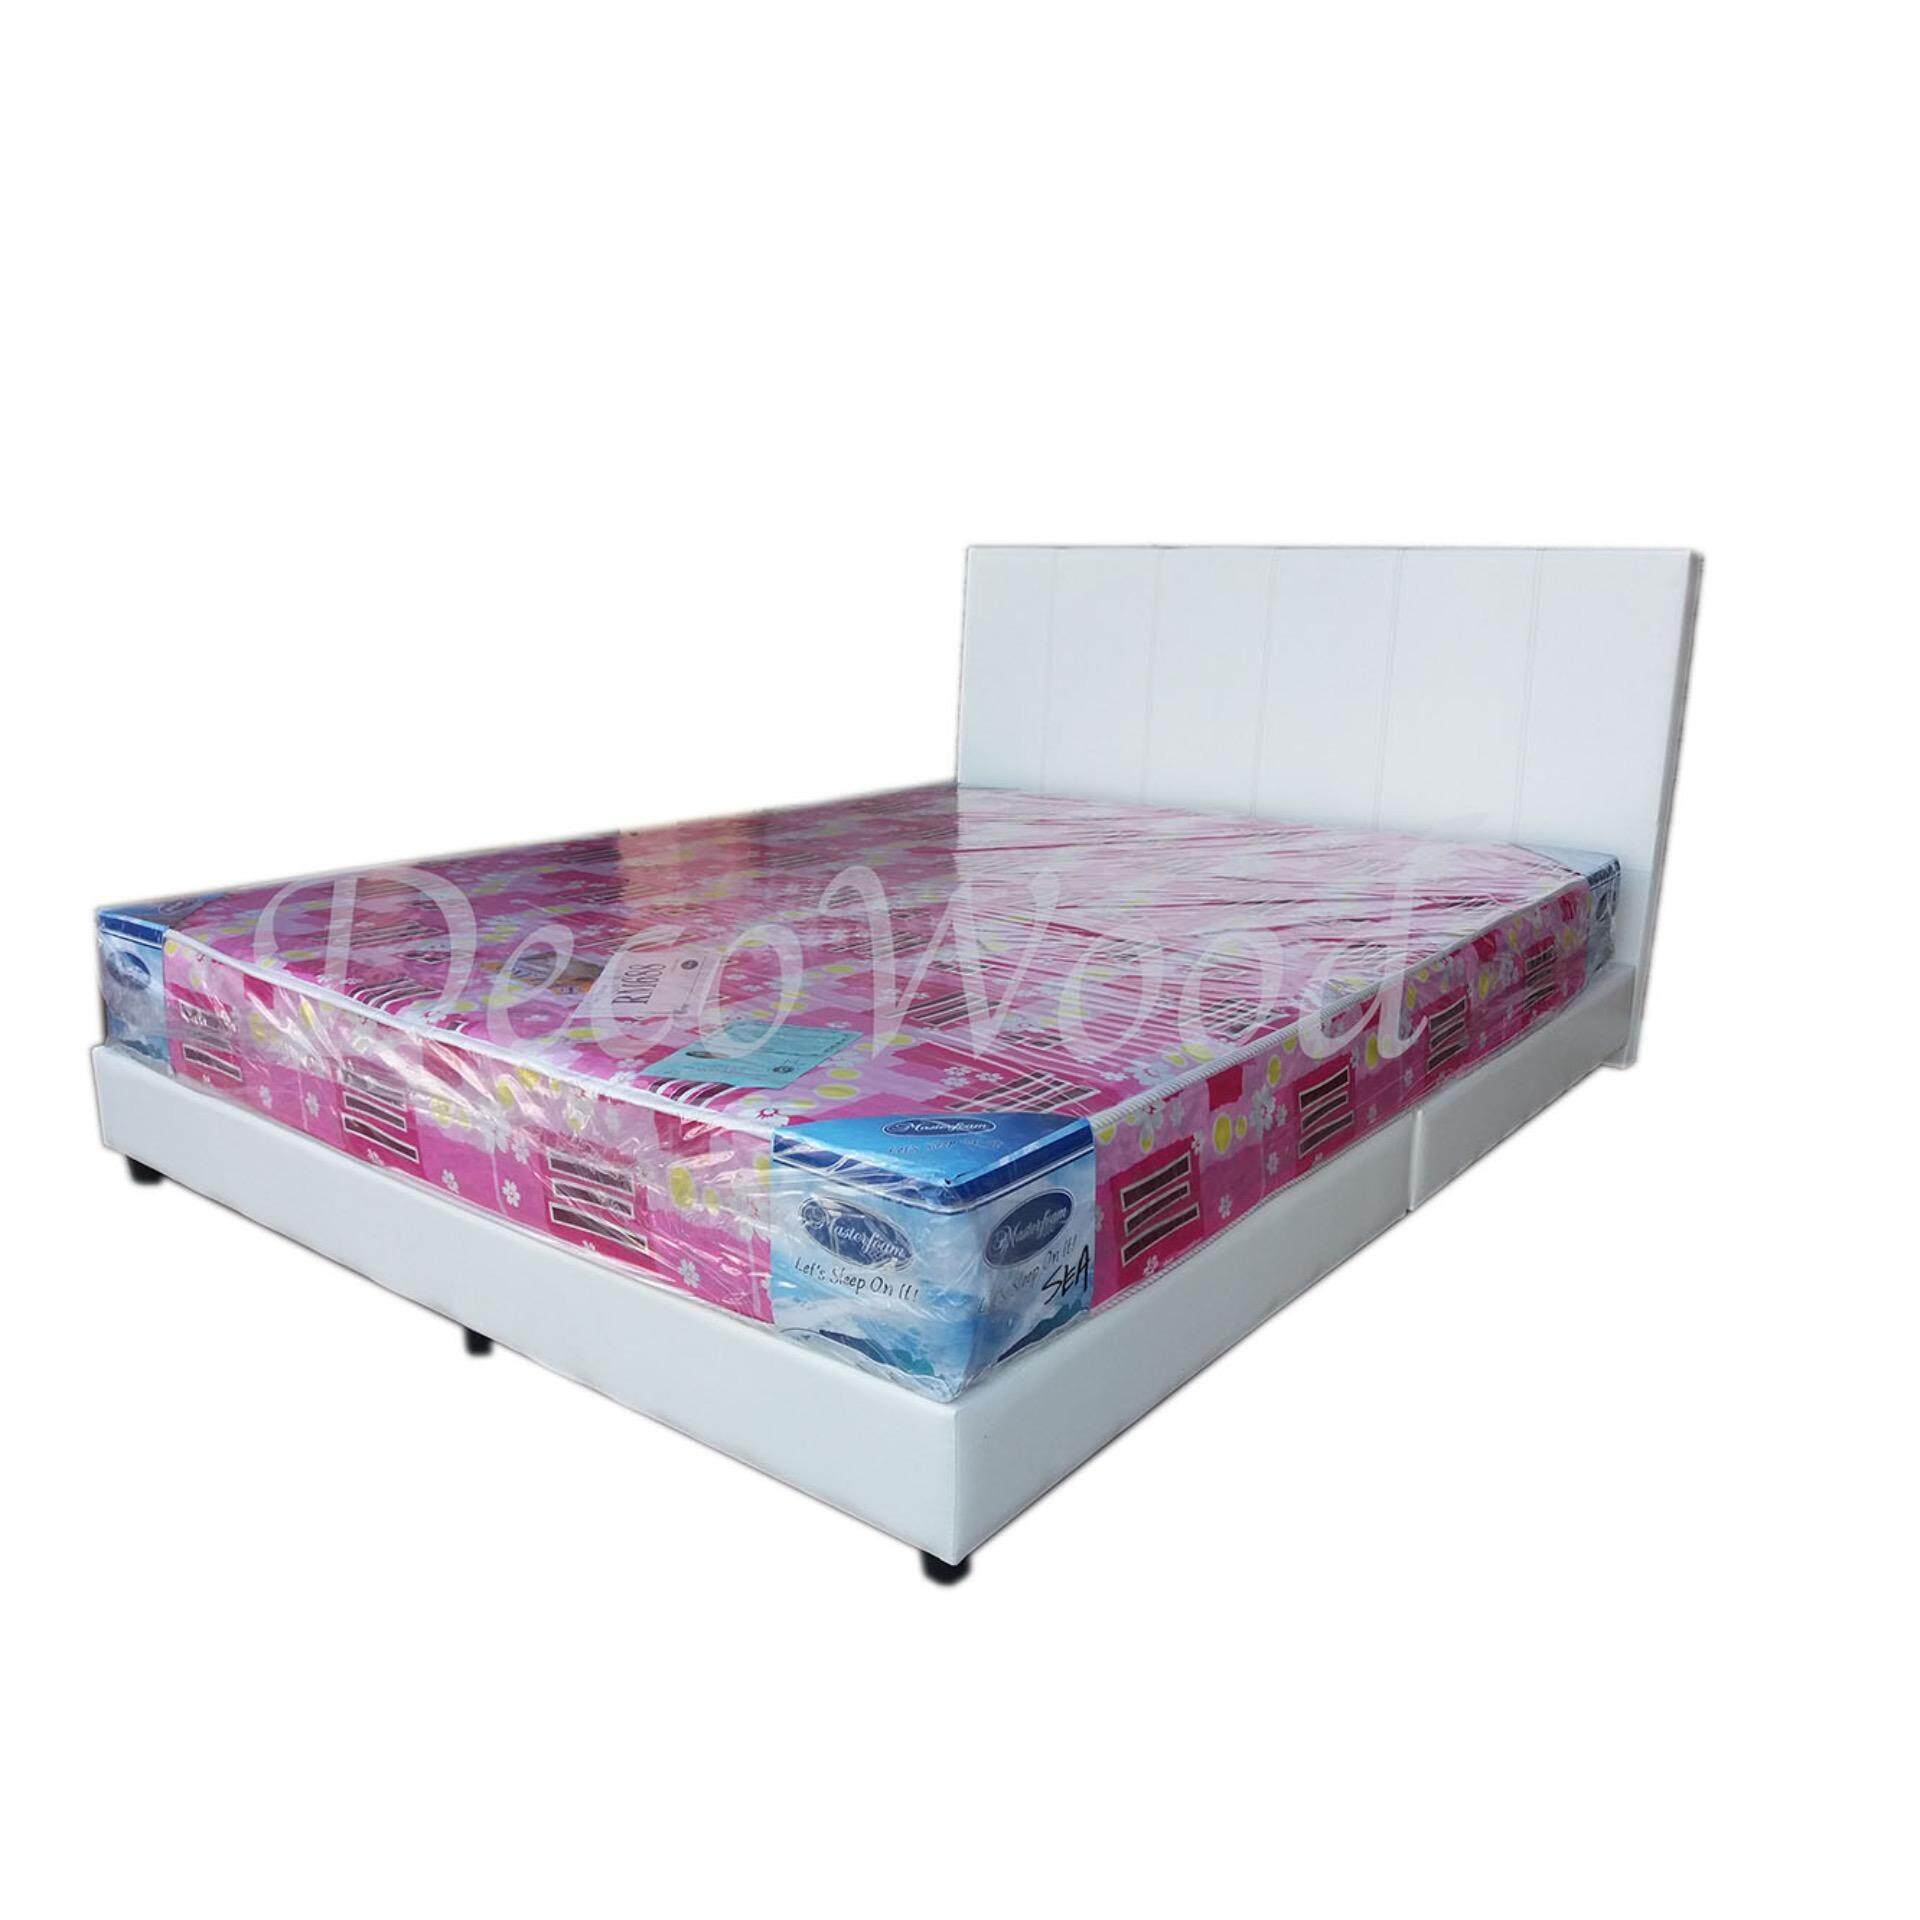 White Divan Bed with 6-inch Queen Size Mattress(Bed + Mattre...